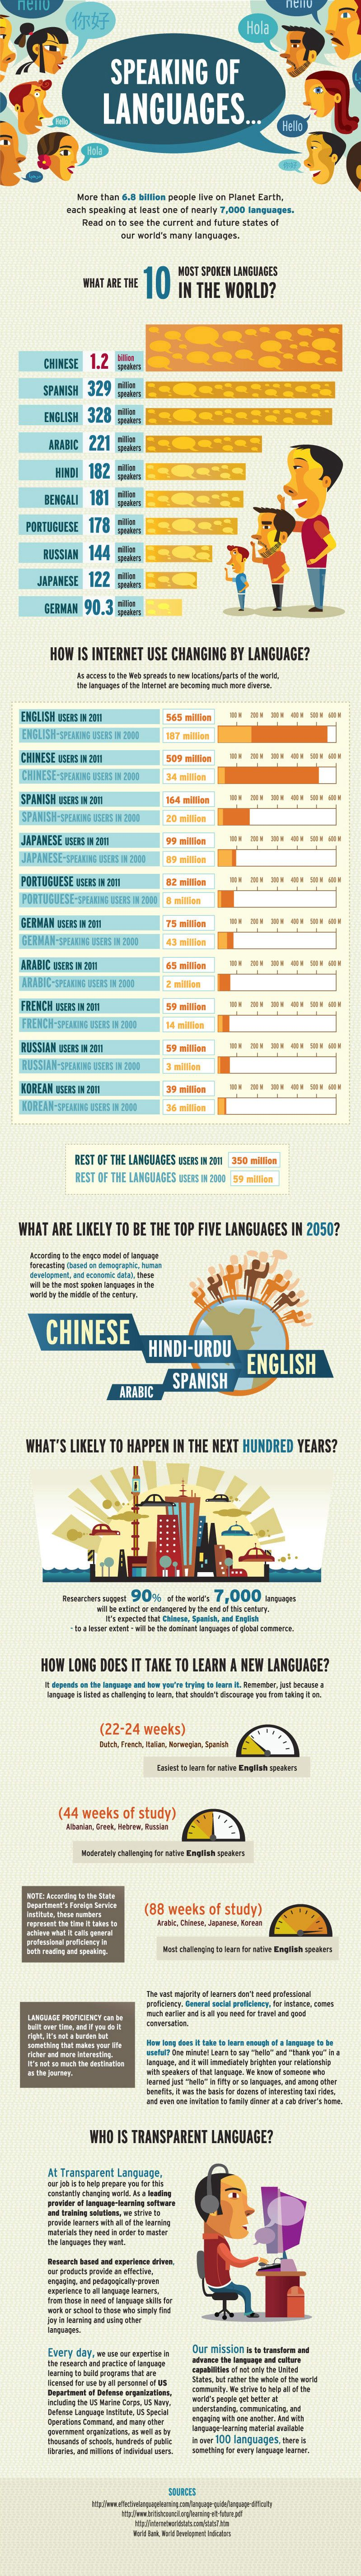 I want to learn a language to eventually make money by tutoring/translating/writing papers.Which would be best?